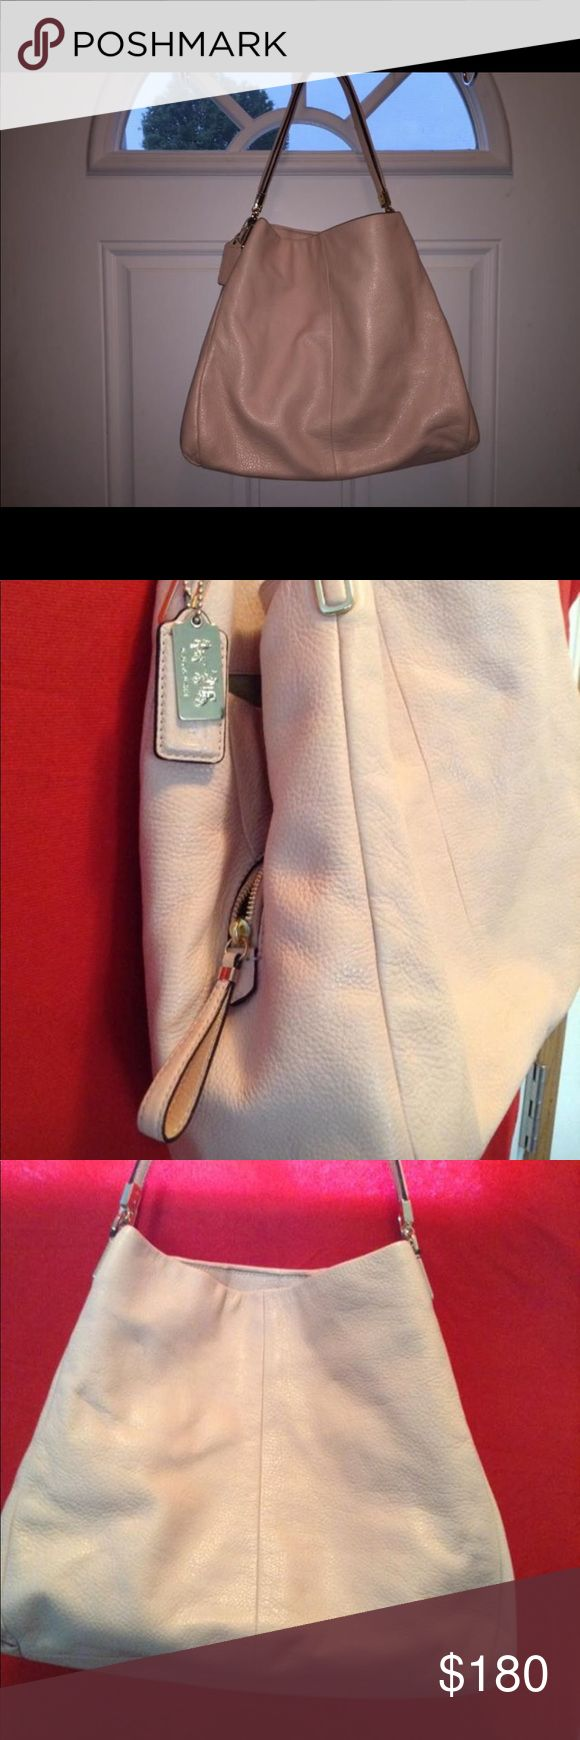 Coach Phoebe Leather in Blush - Like New! $558 Coach Phoebe Leather in Blush - Like New! $558 Retail. I purchased this bag from Coach in Key West. Not a factory bag. Excellent used condition. No stains or snags. No tarnish on any of the tags or zippers.  Huge - Large bag!  No dust bag. Coach Bags Shoulder Bags